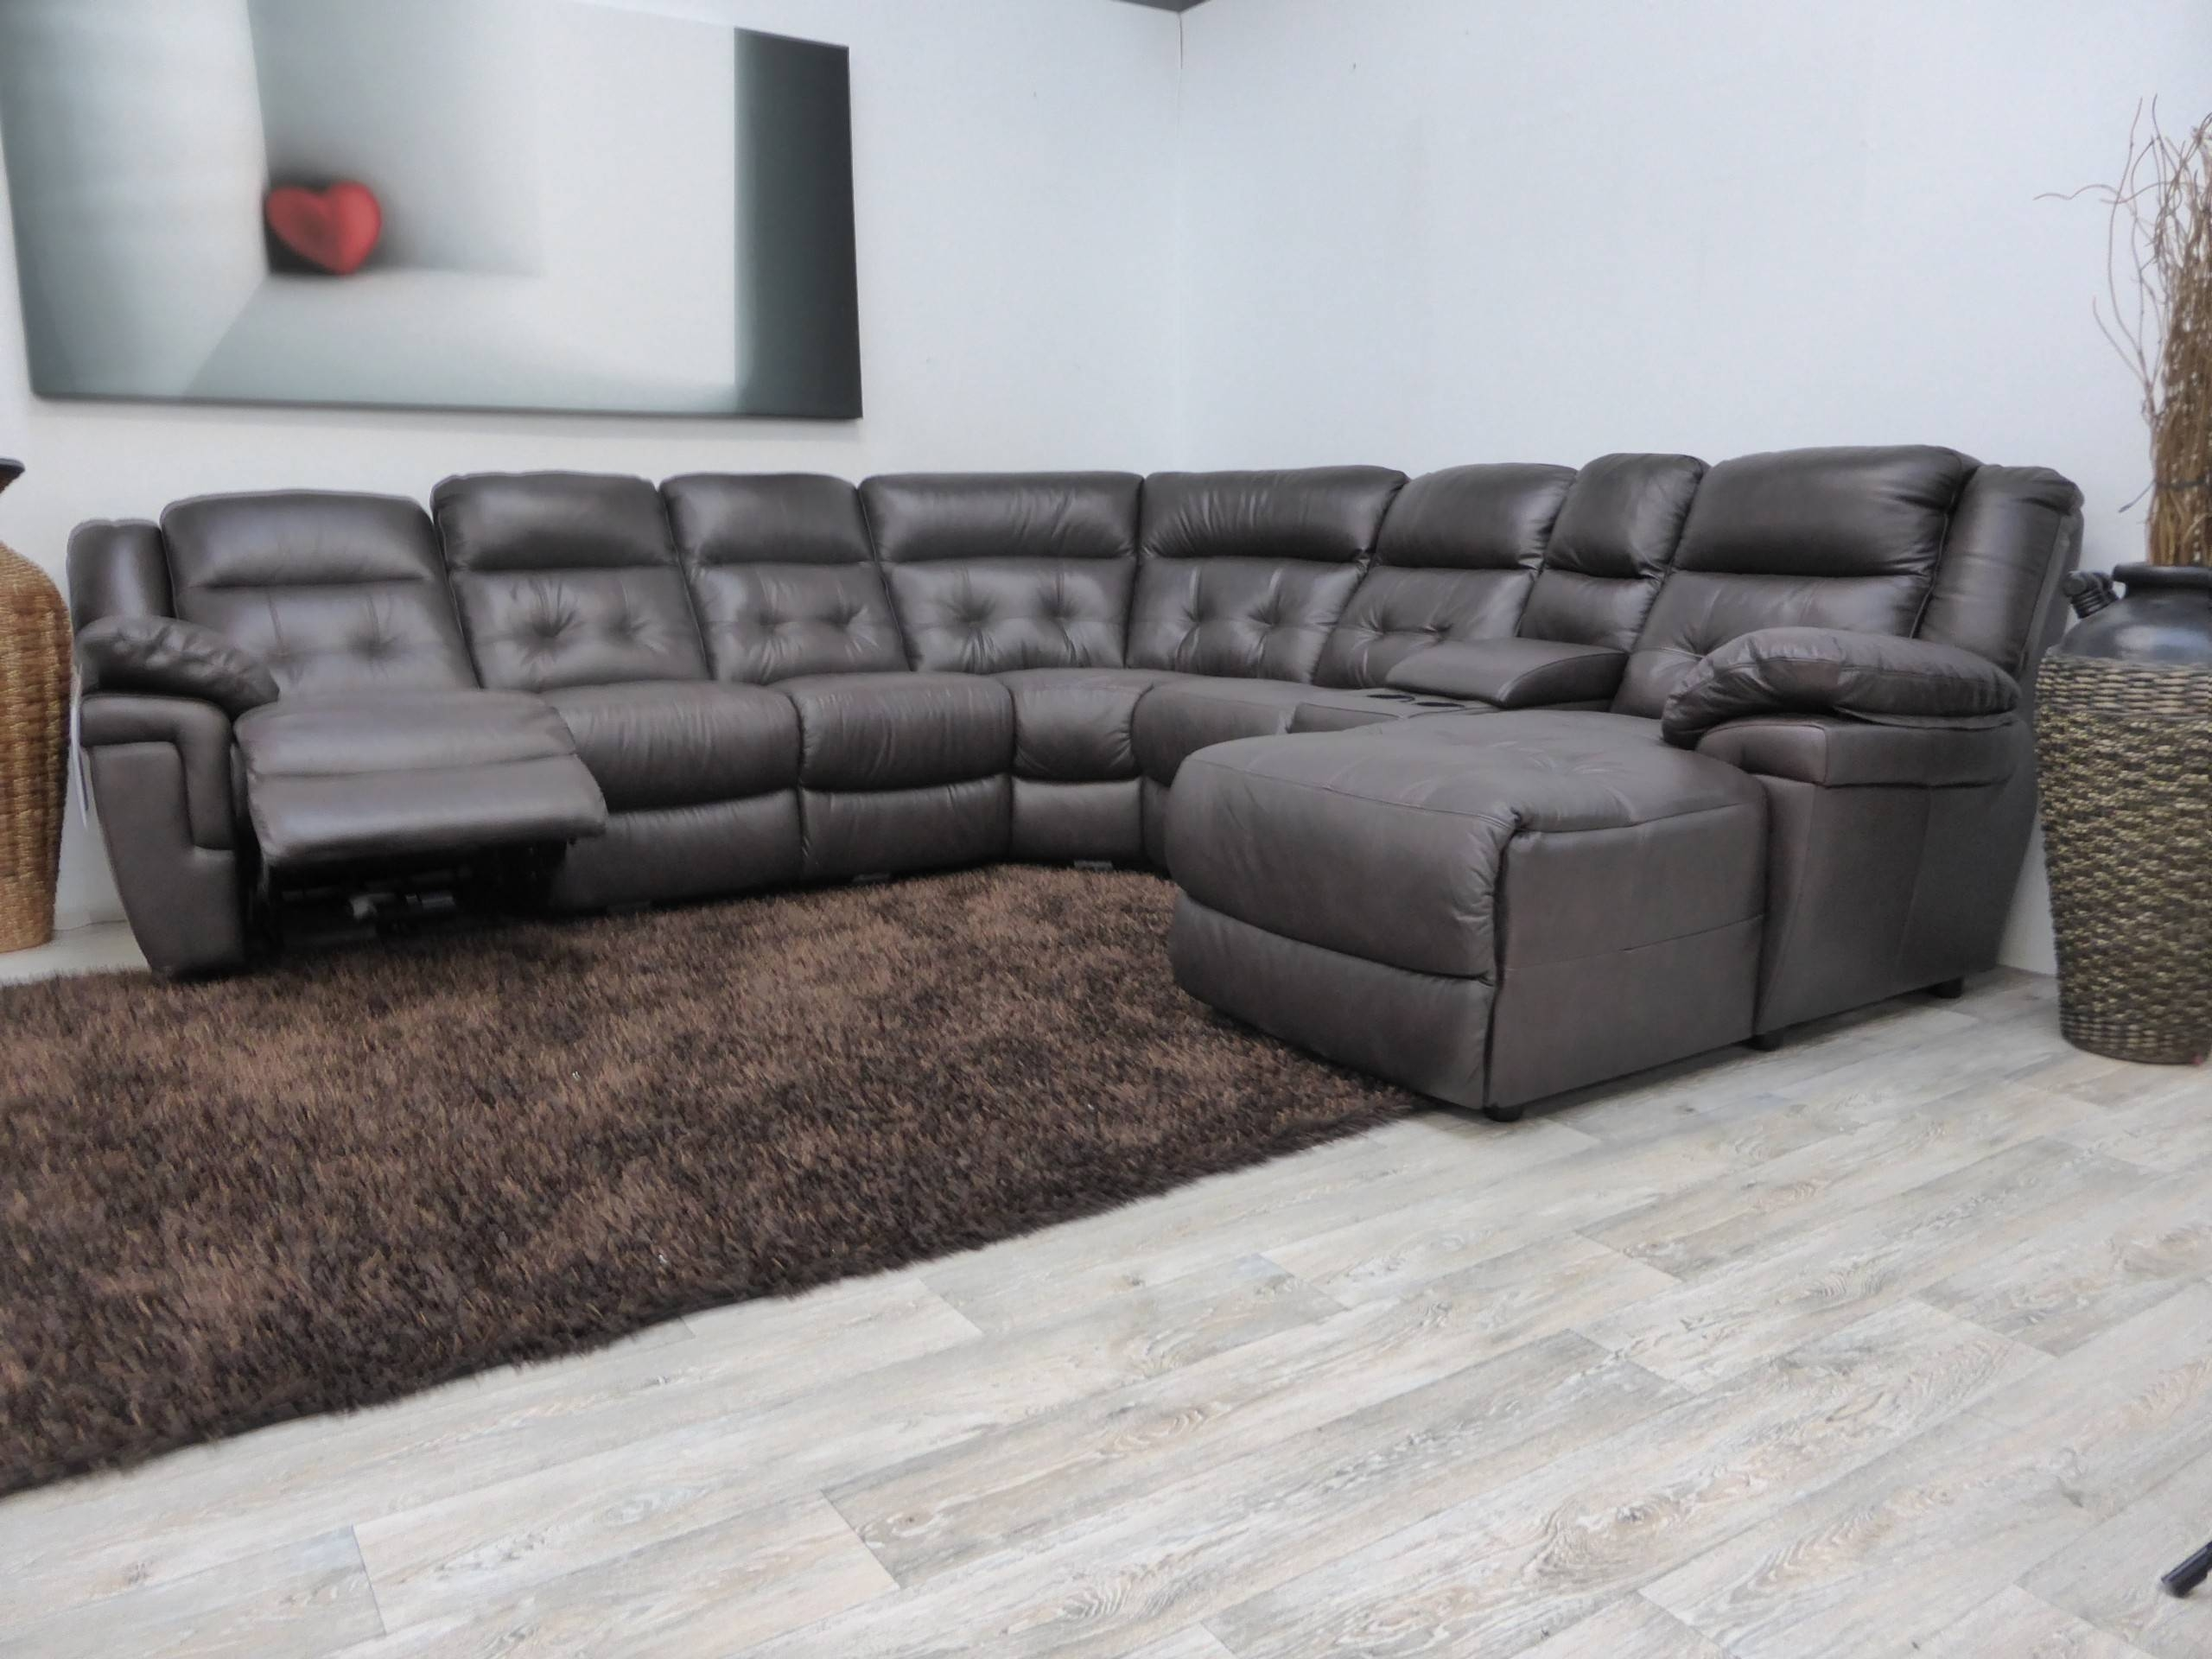 Popular Sectional Sofas Craigslist 54 About Remodel Sectional For Rochester Sectional Sofas (View 14 of 15)